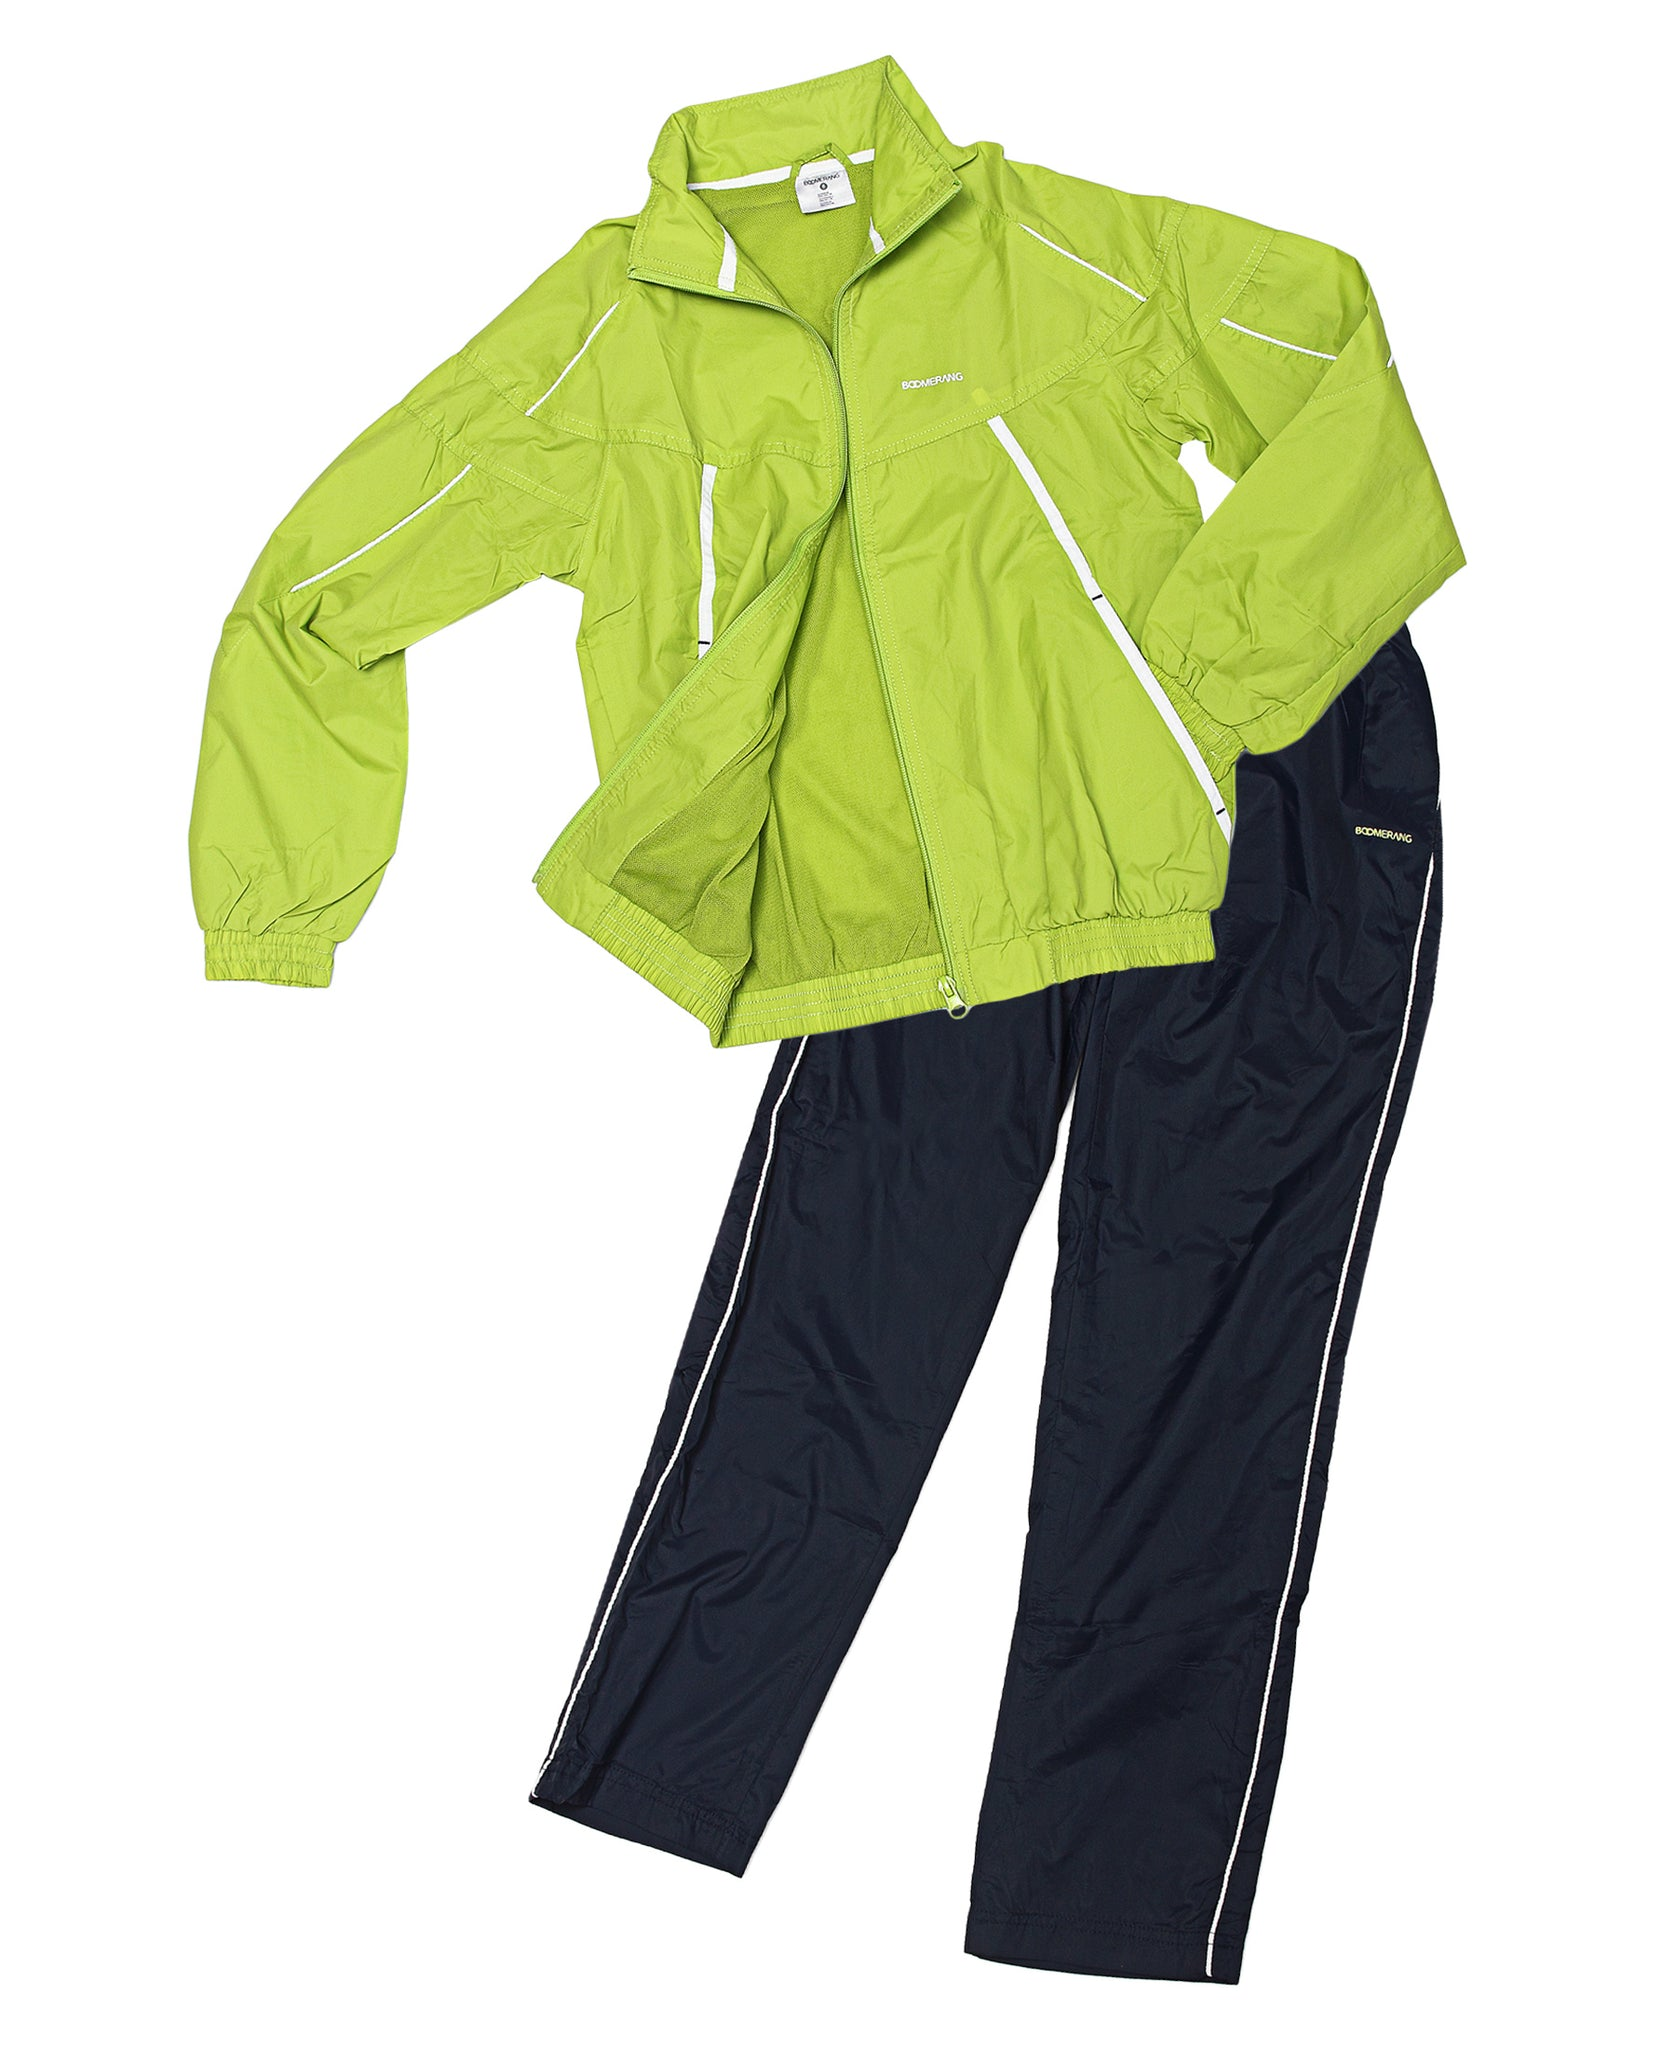 Kids 2 Piece Tracksuit - Green